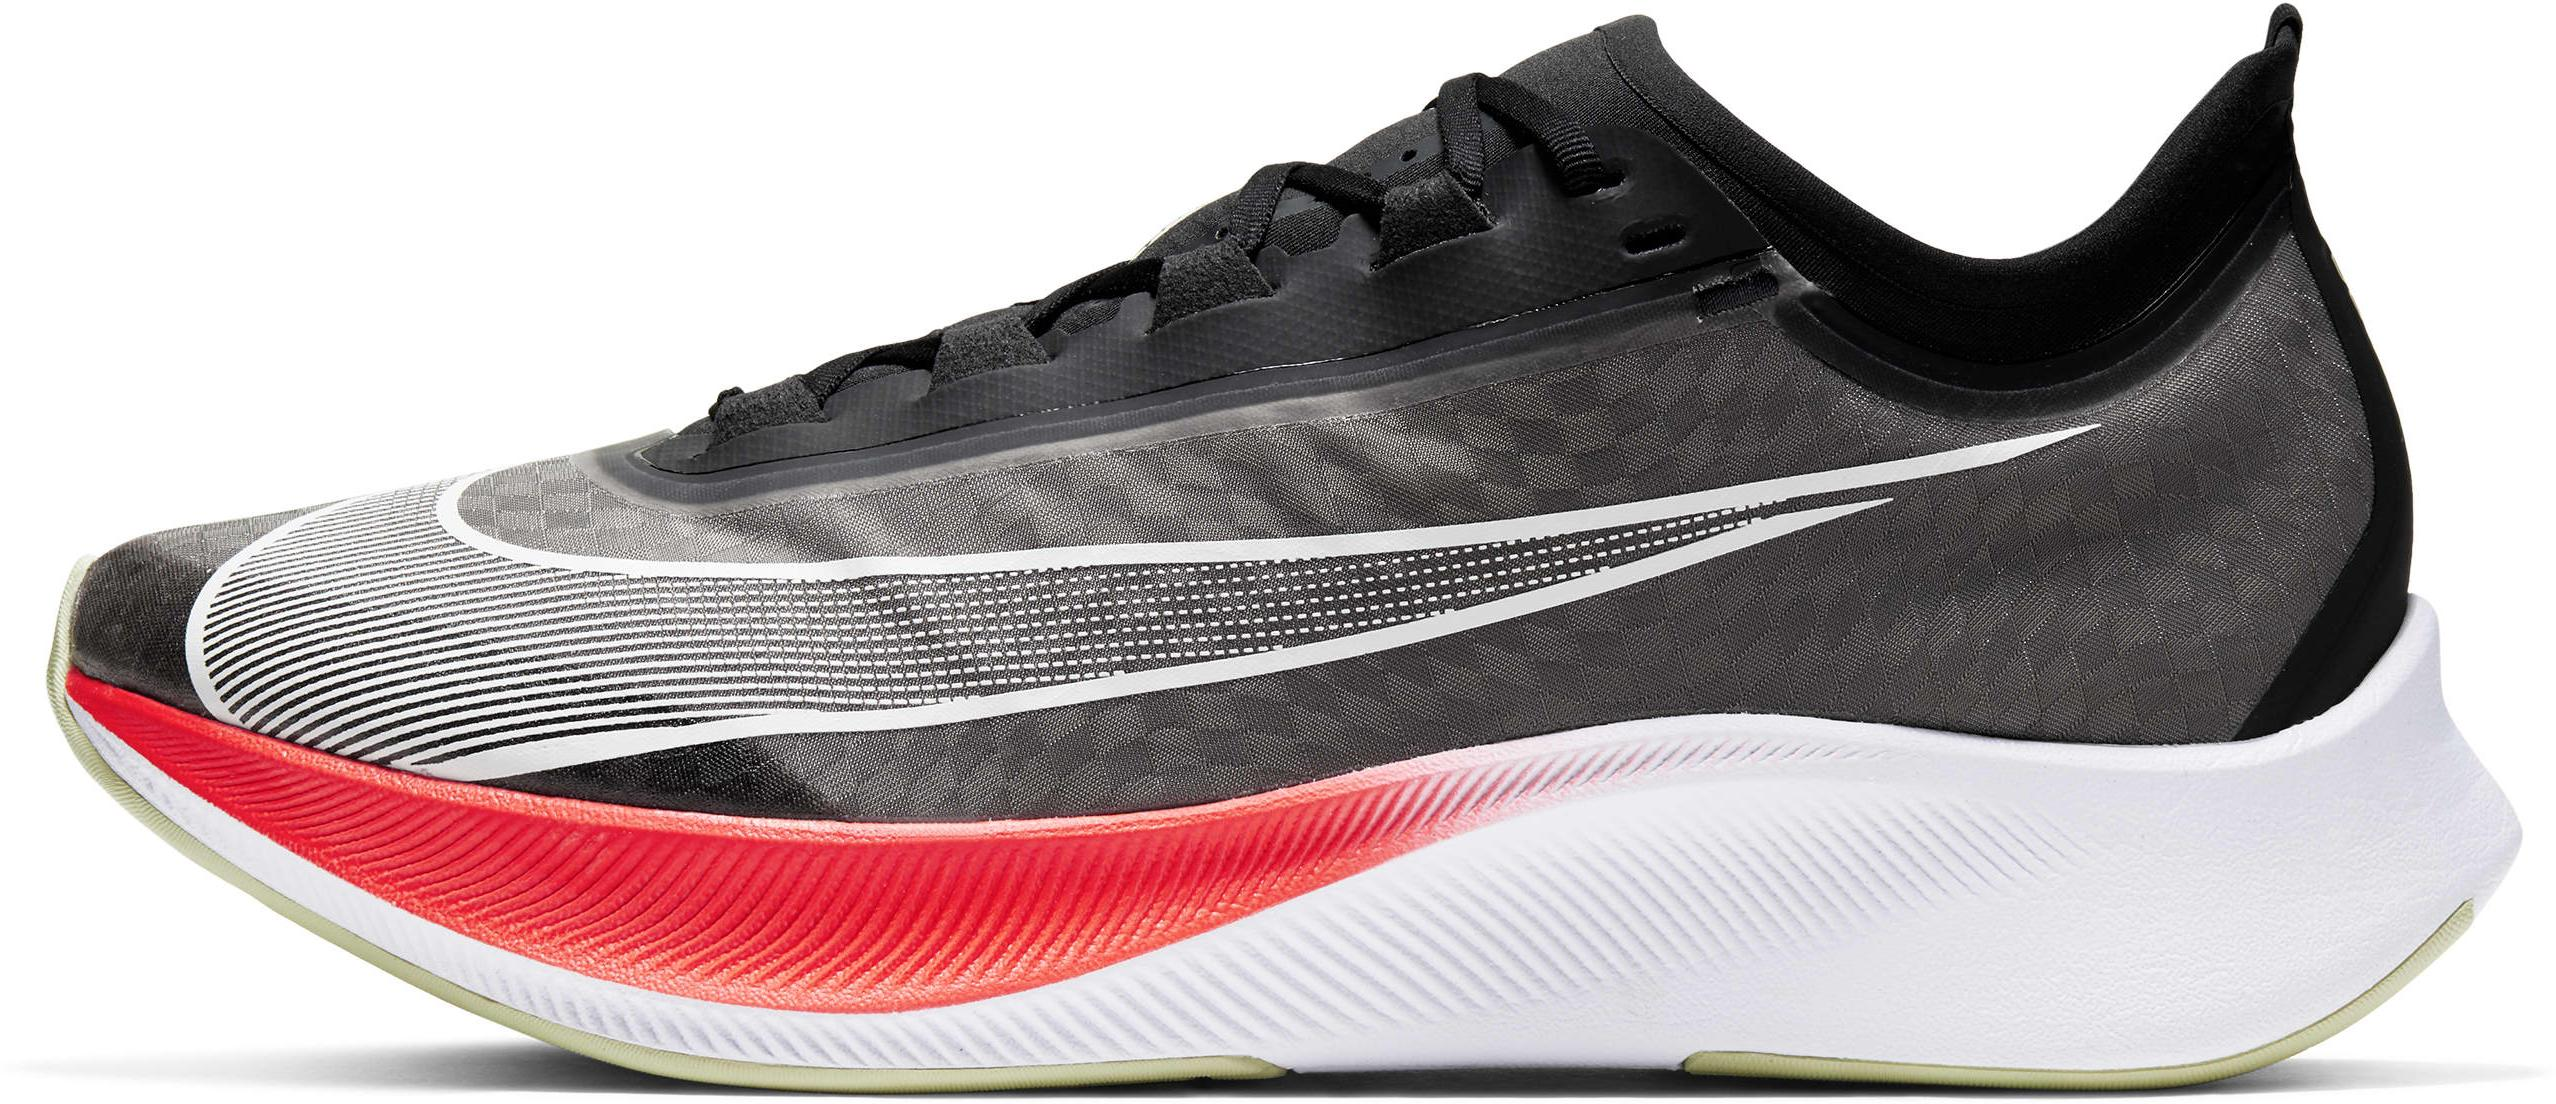 Nike Zoom Fly 3 Black/Laser Crimson/Olive Aura/White